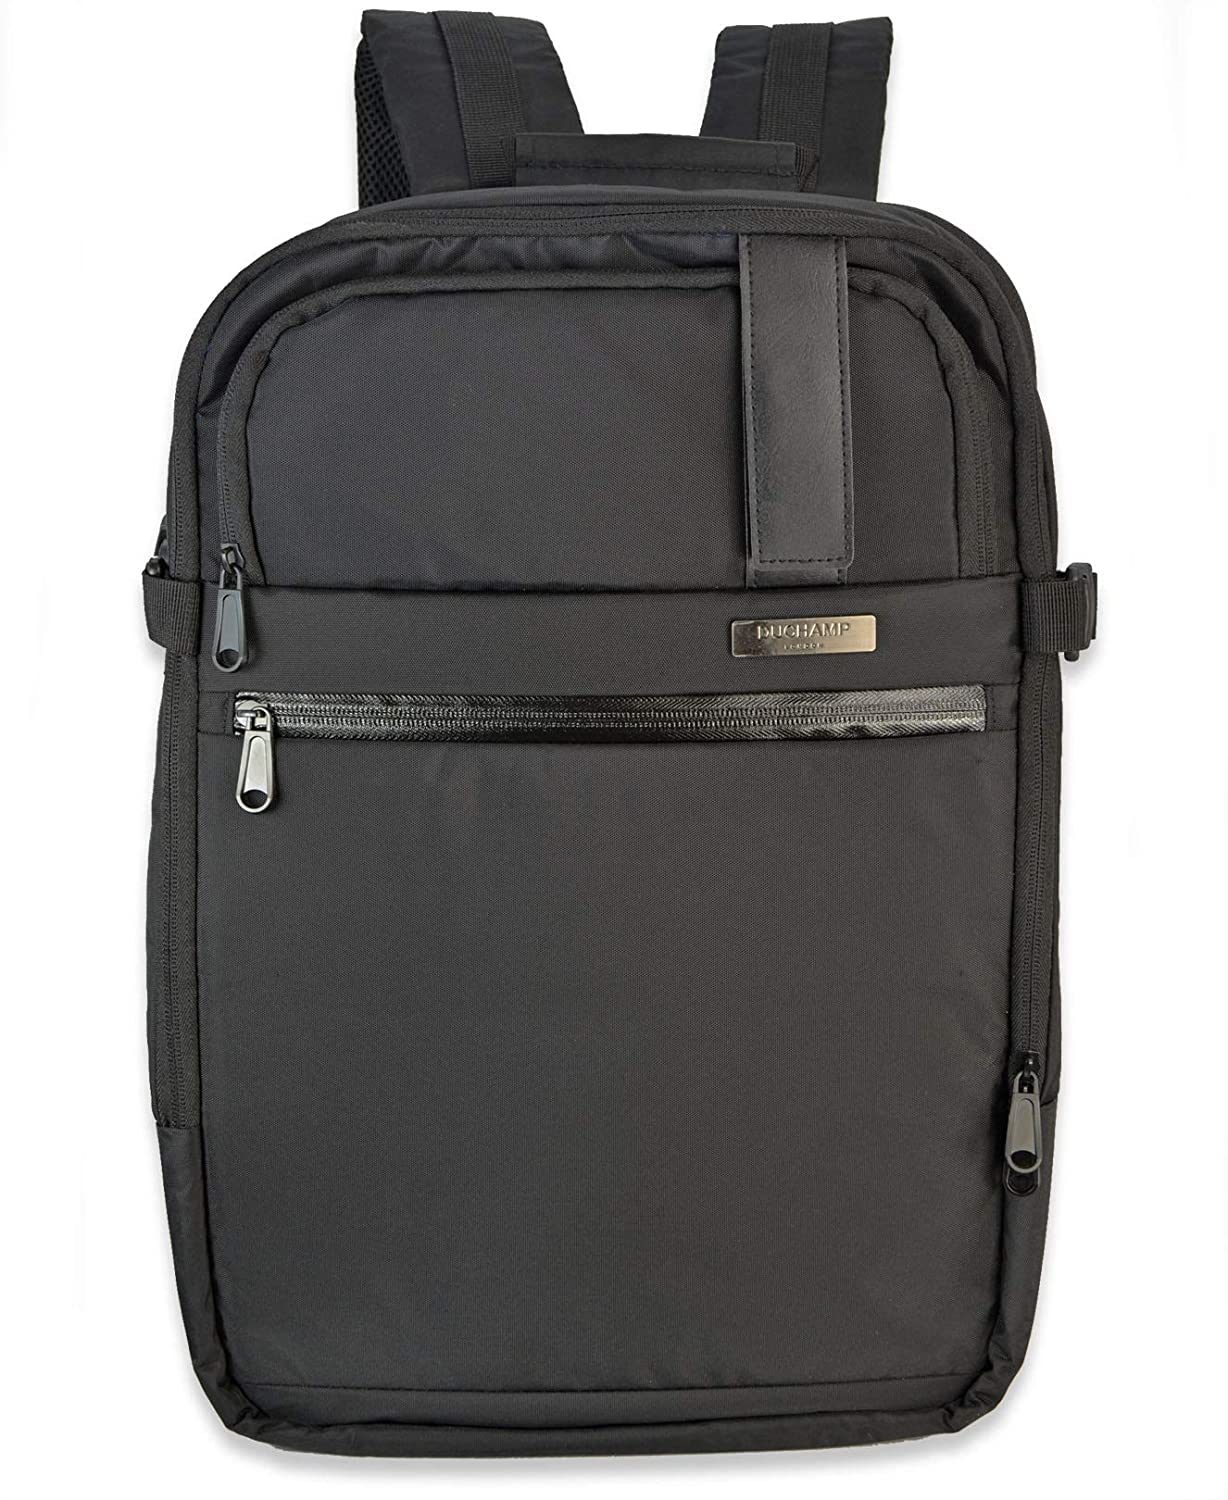 The Duchamp London Getaway Backpack travel product recommended by Lauren Wilson on Lifney.